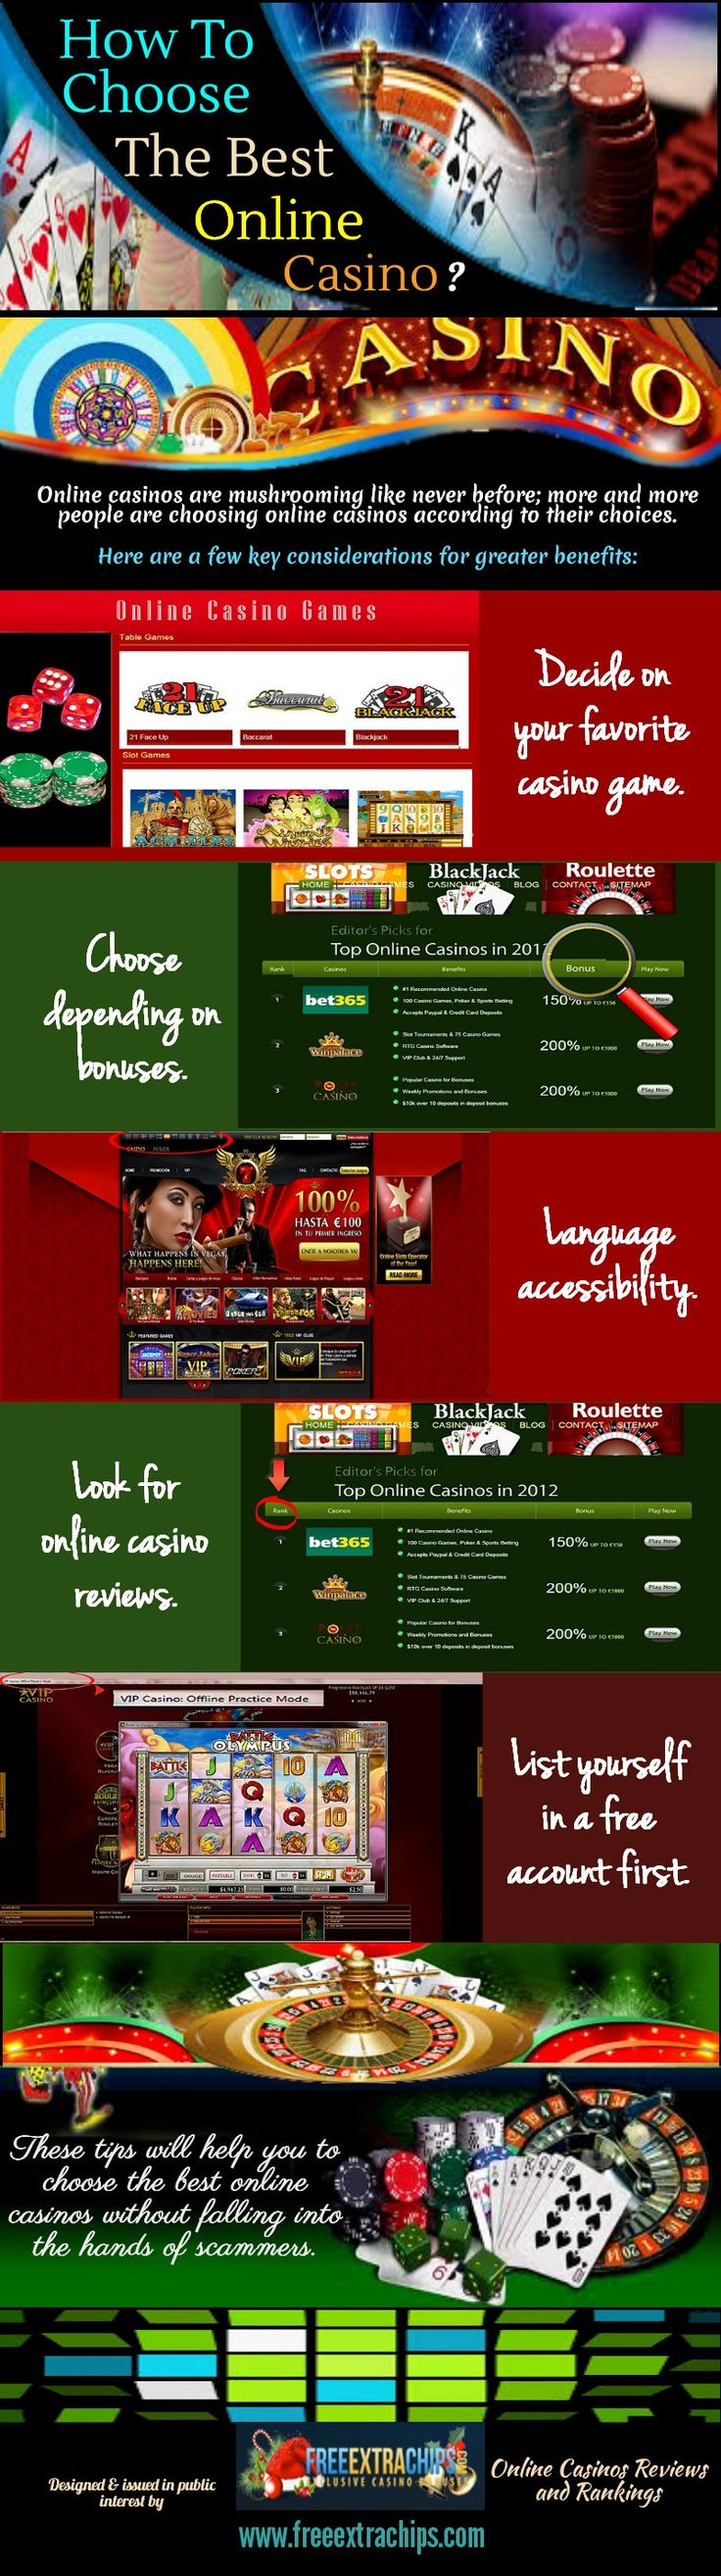 This infographic depict complete information on how to select the best online casino.